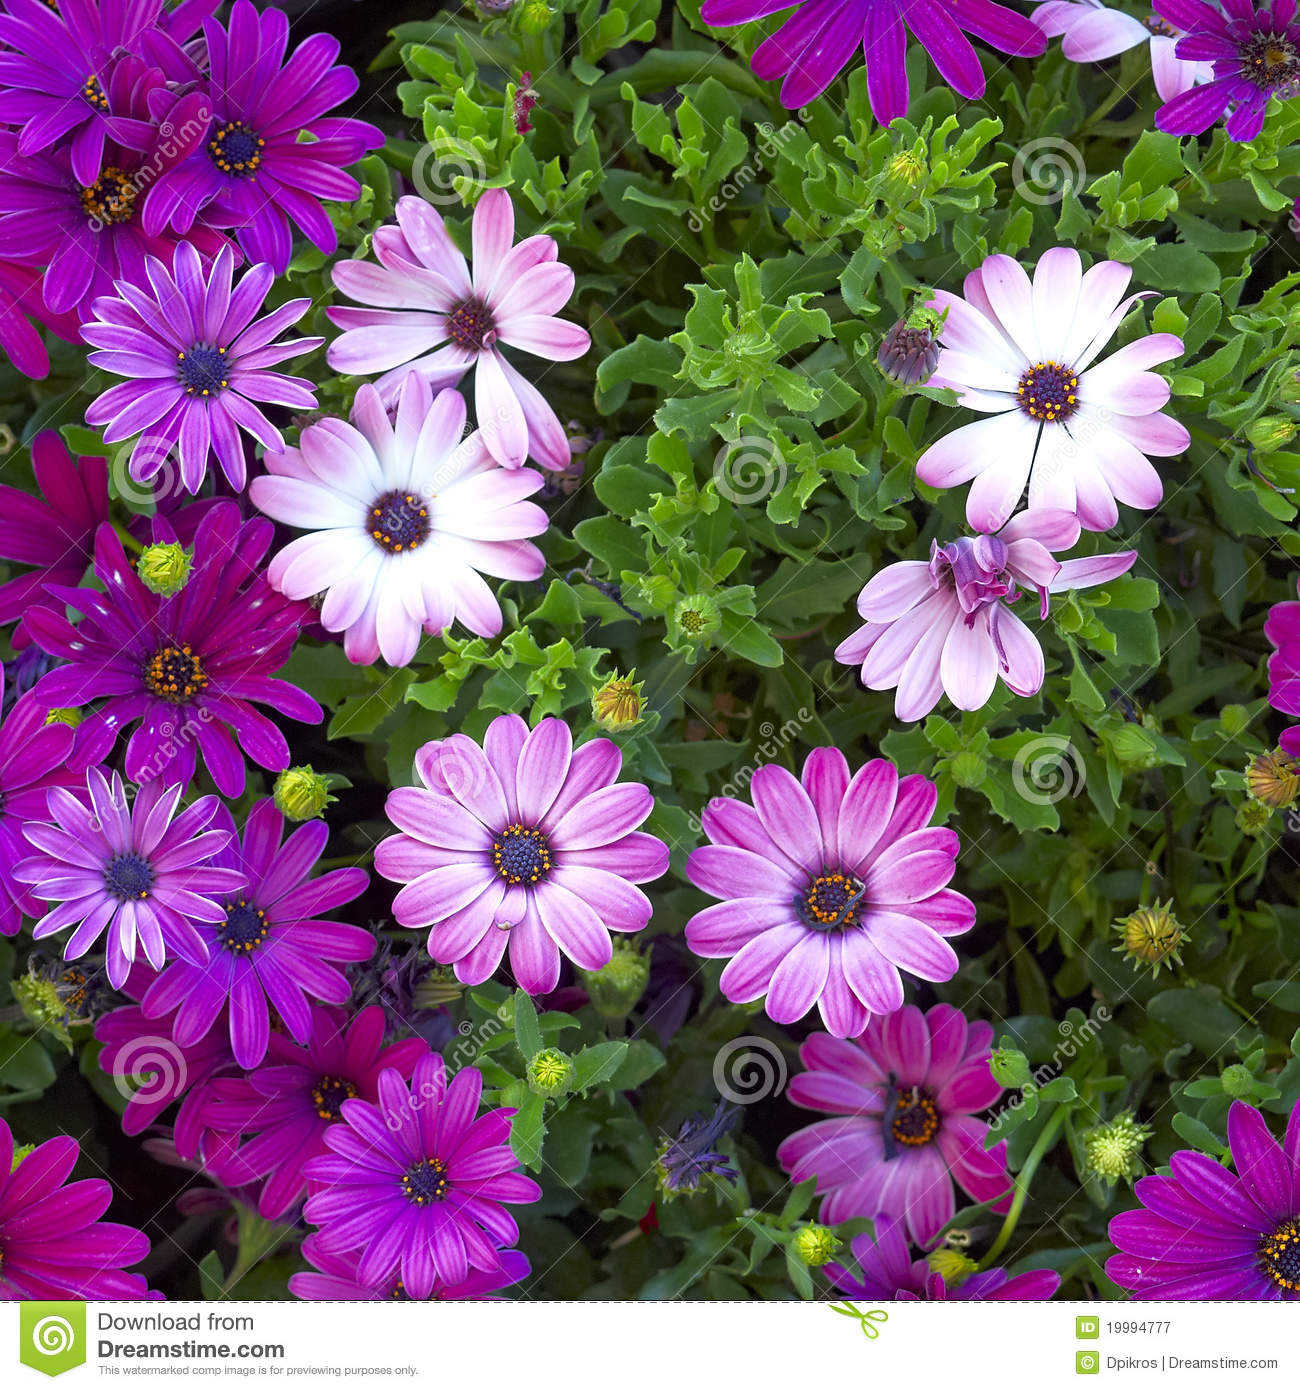 purple aster daisy flowers royalty free stock photography  image, Beautiful flower